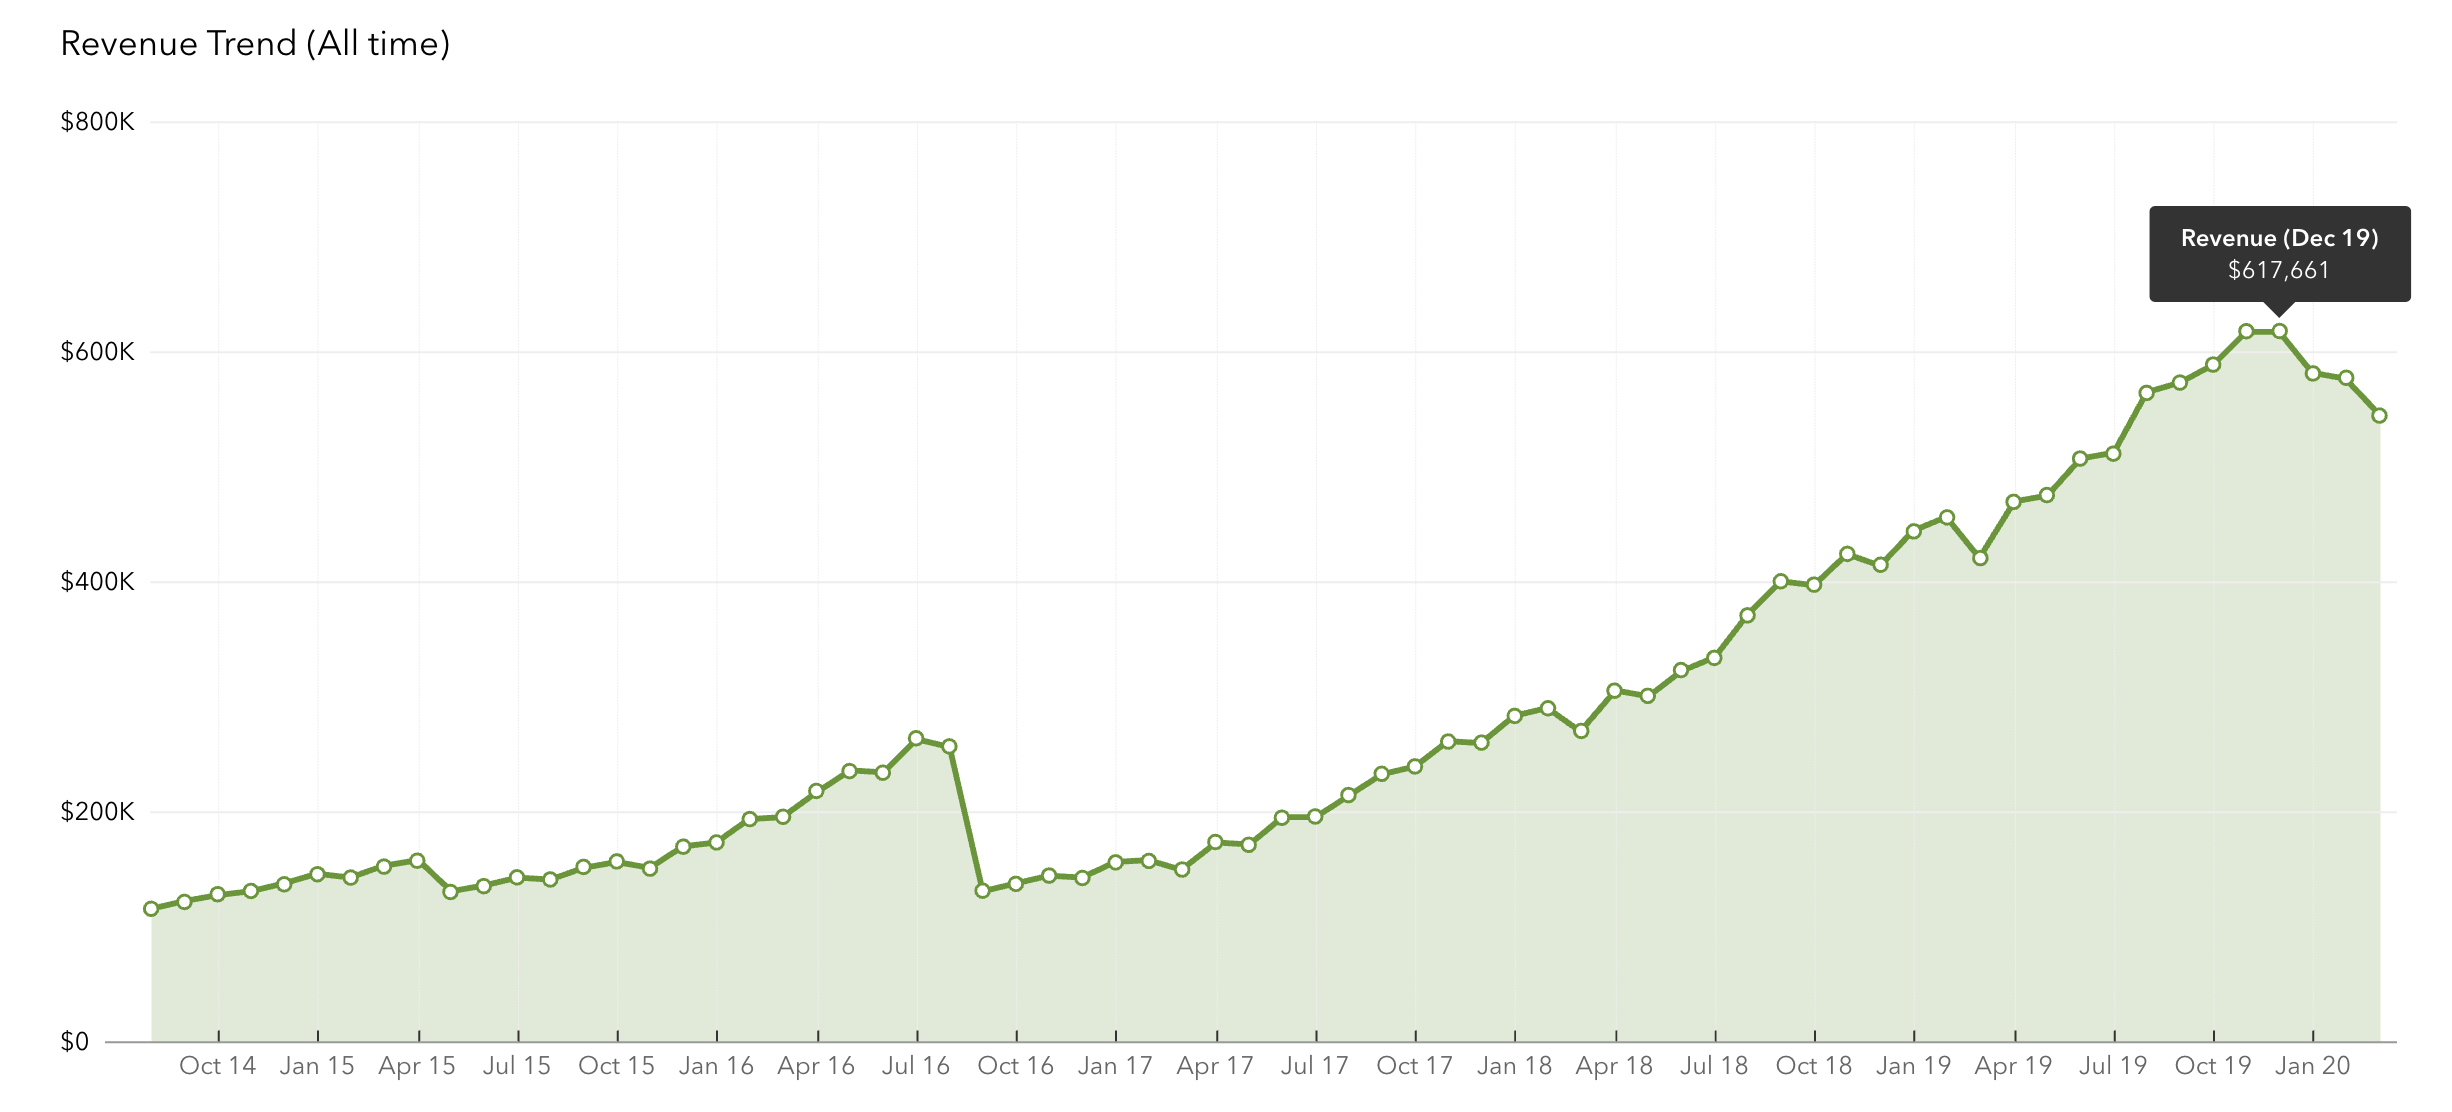 Chart-1-Revenue-trend-all-time